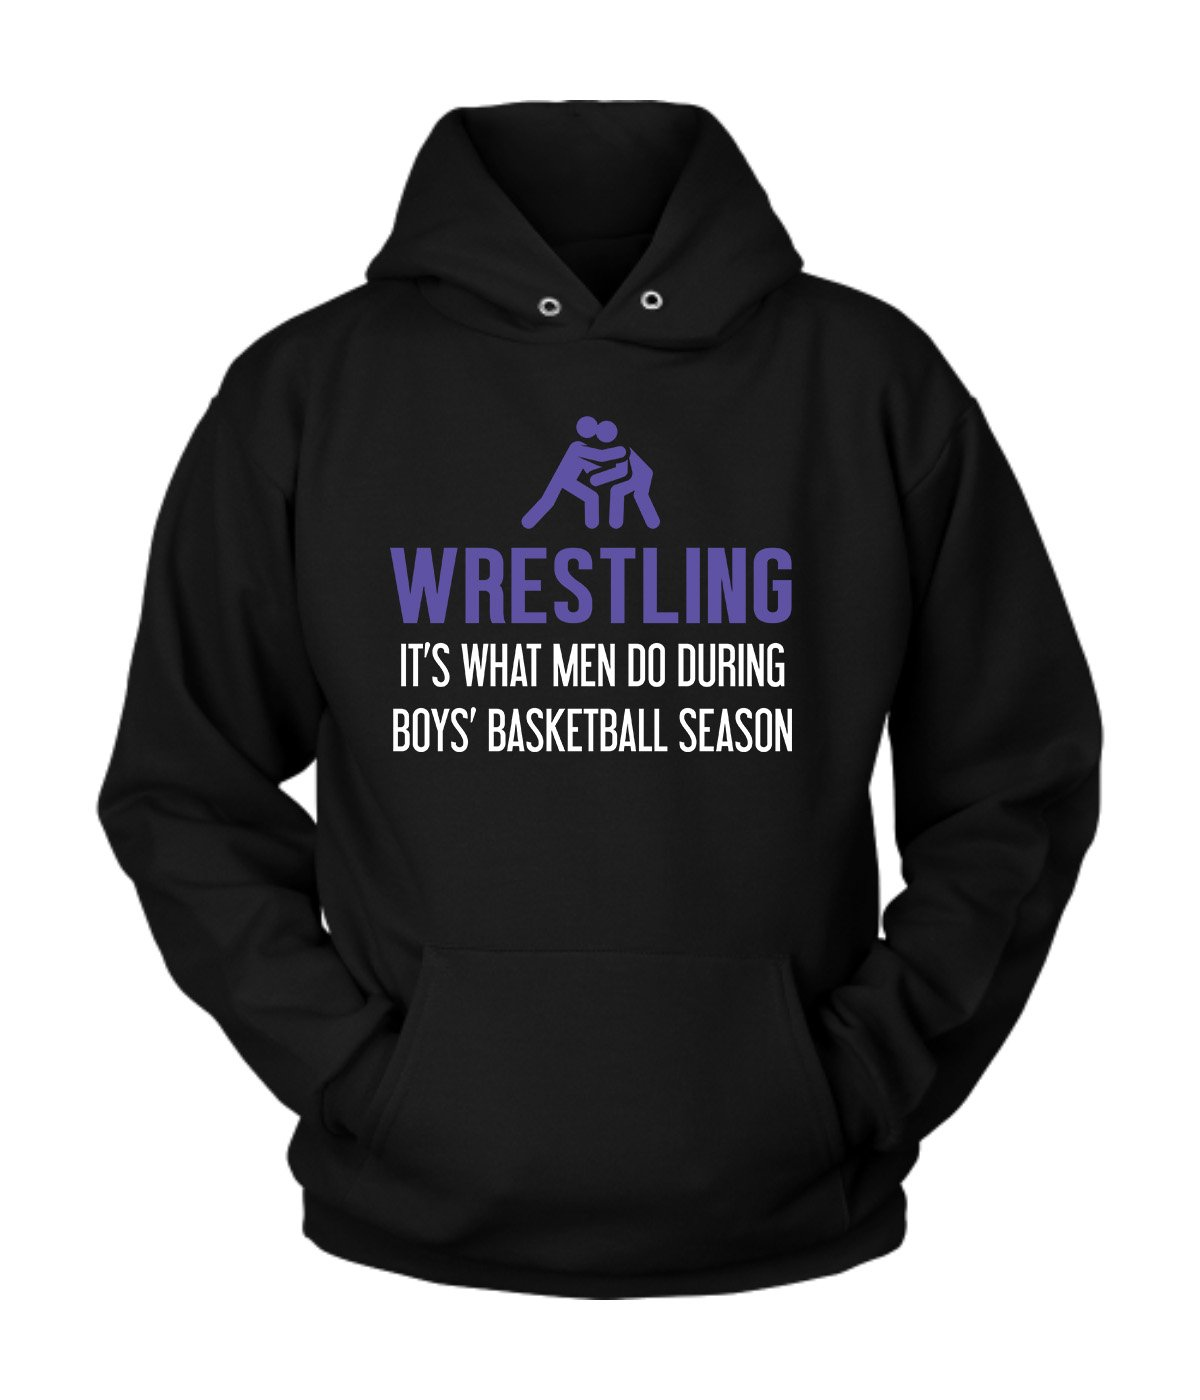 Wrestling Hoodie | Wrestling Cotton Fleece Hoodie | Great Hoodie with a Creative Quote about Wrestling (M) by District Hoodies